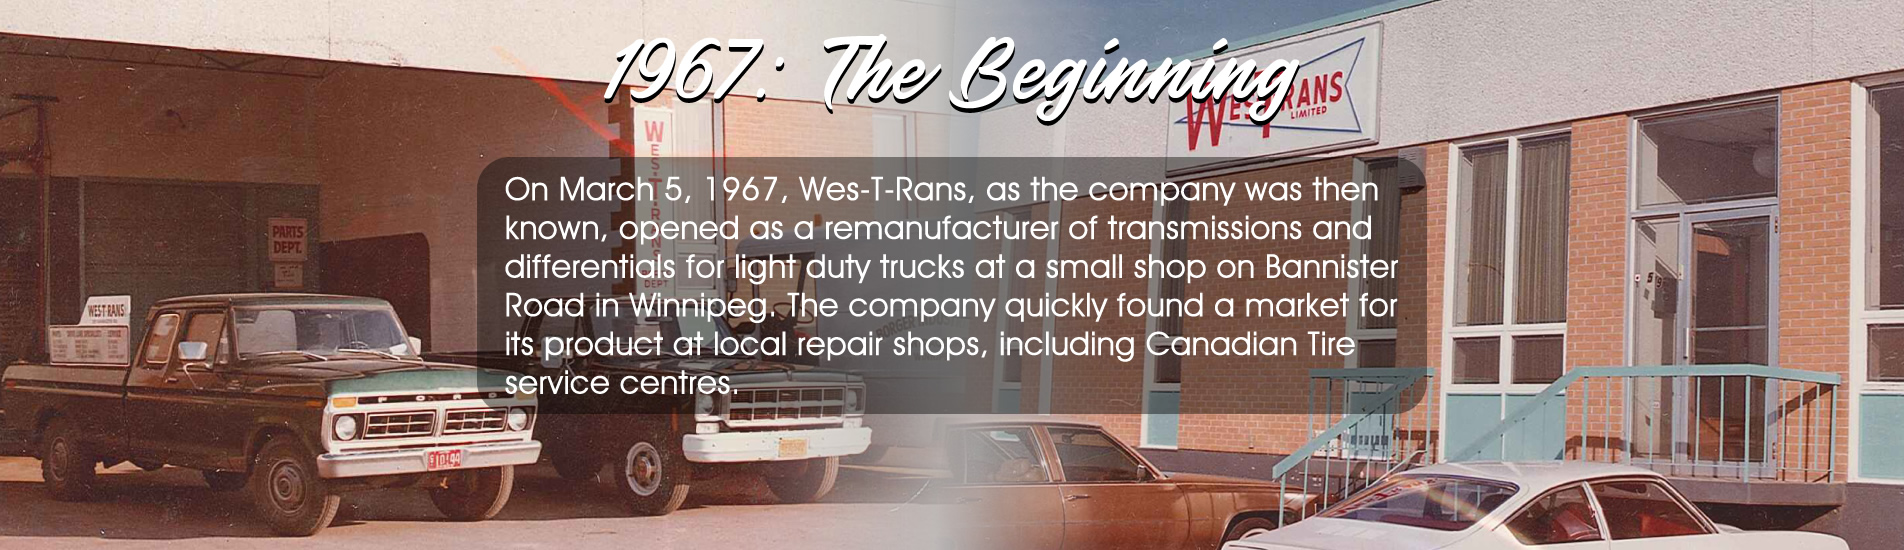 westrans-the-beginning-1967